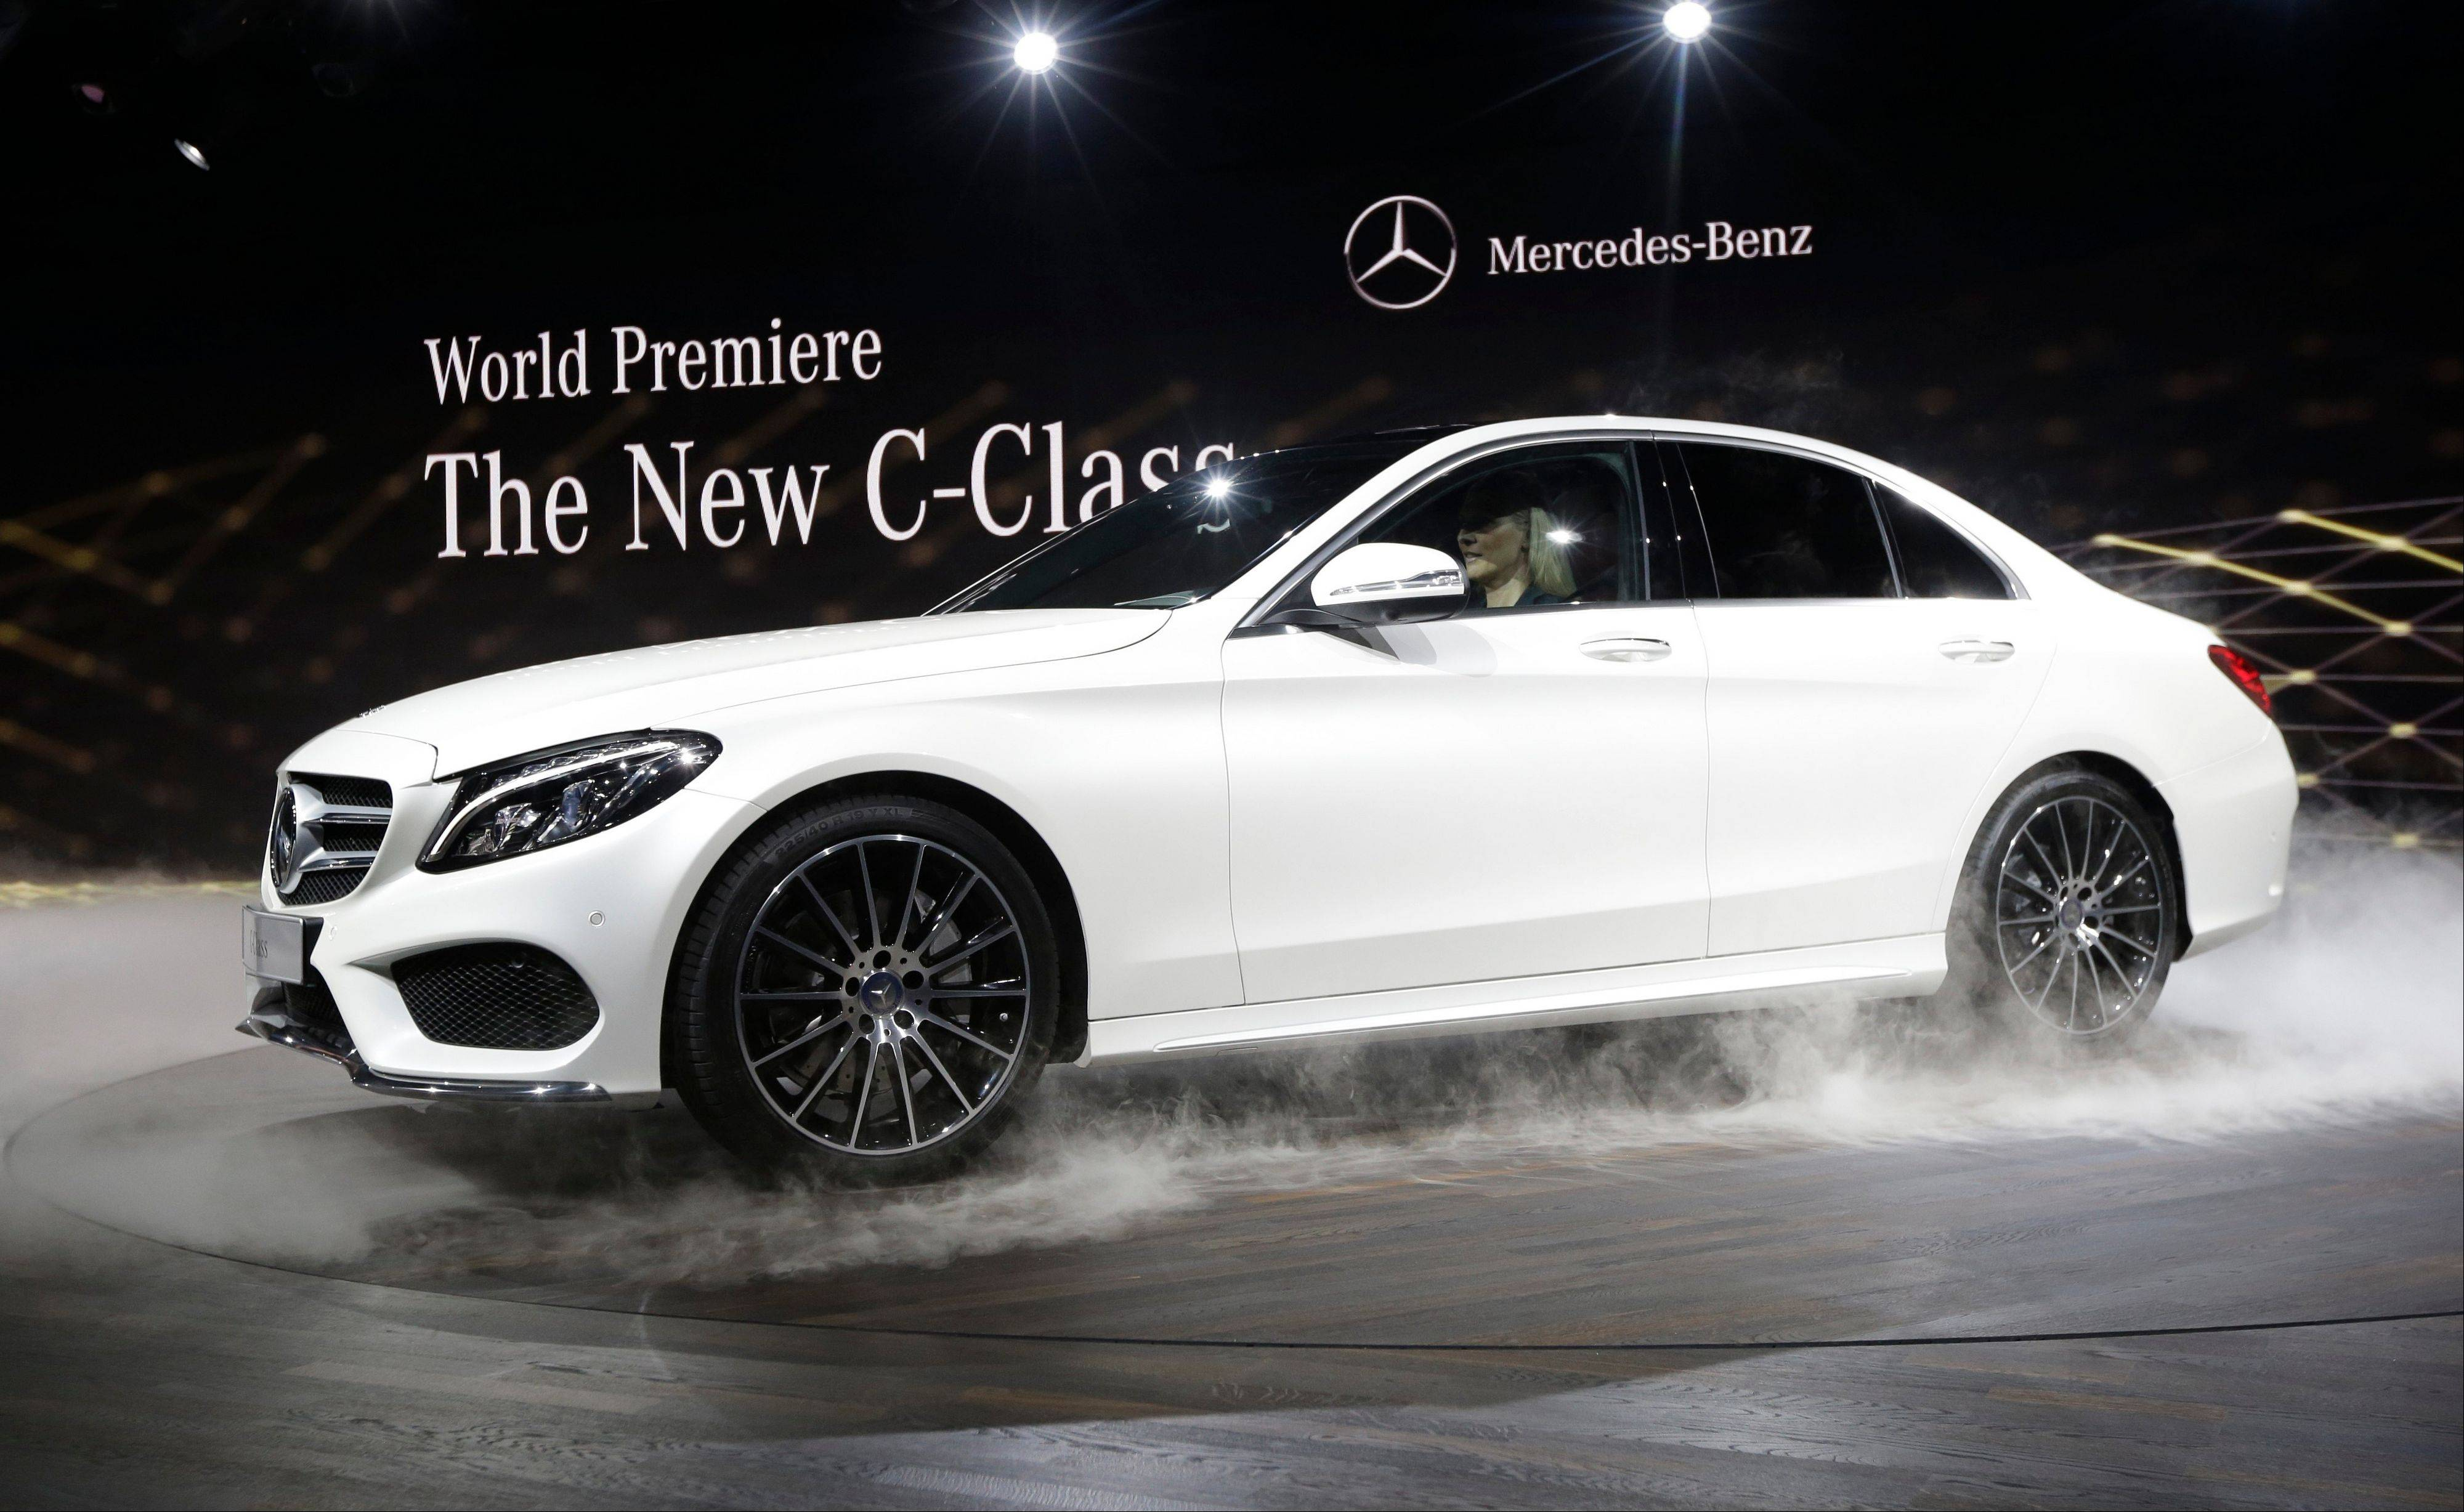 Mercedes-Benz unveils the new C-Class car during a preview night for the North American International Auto Show in Detroit this week.